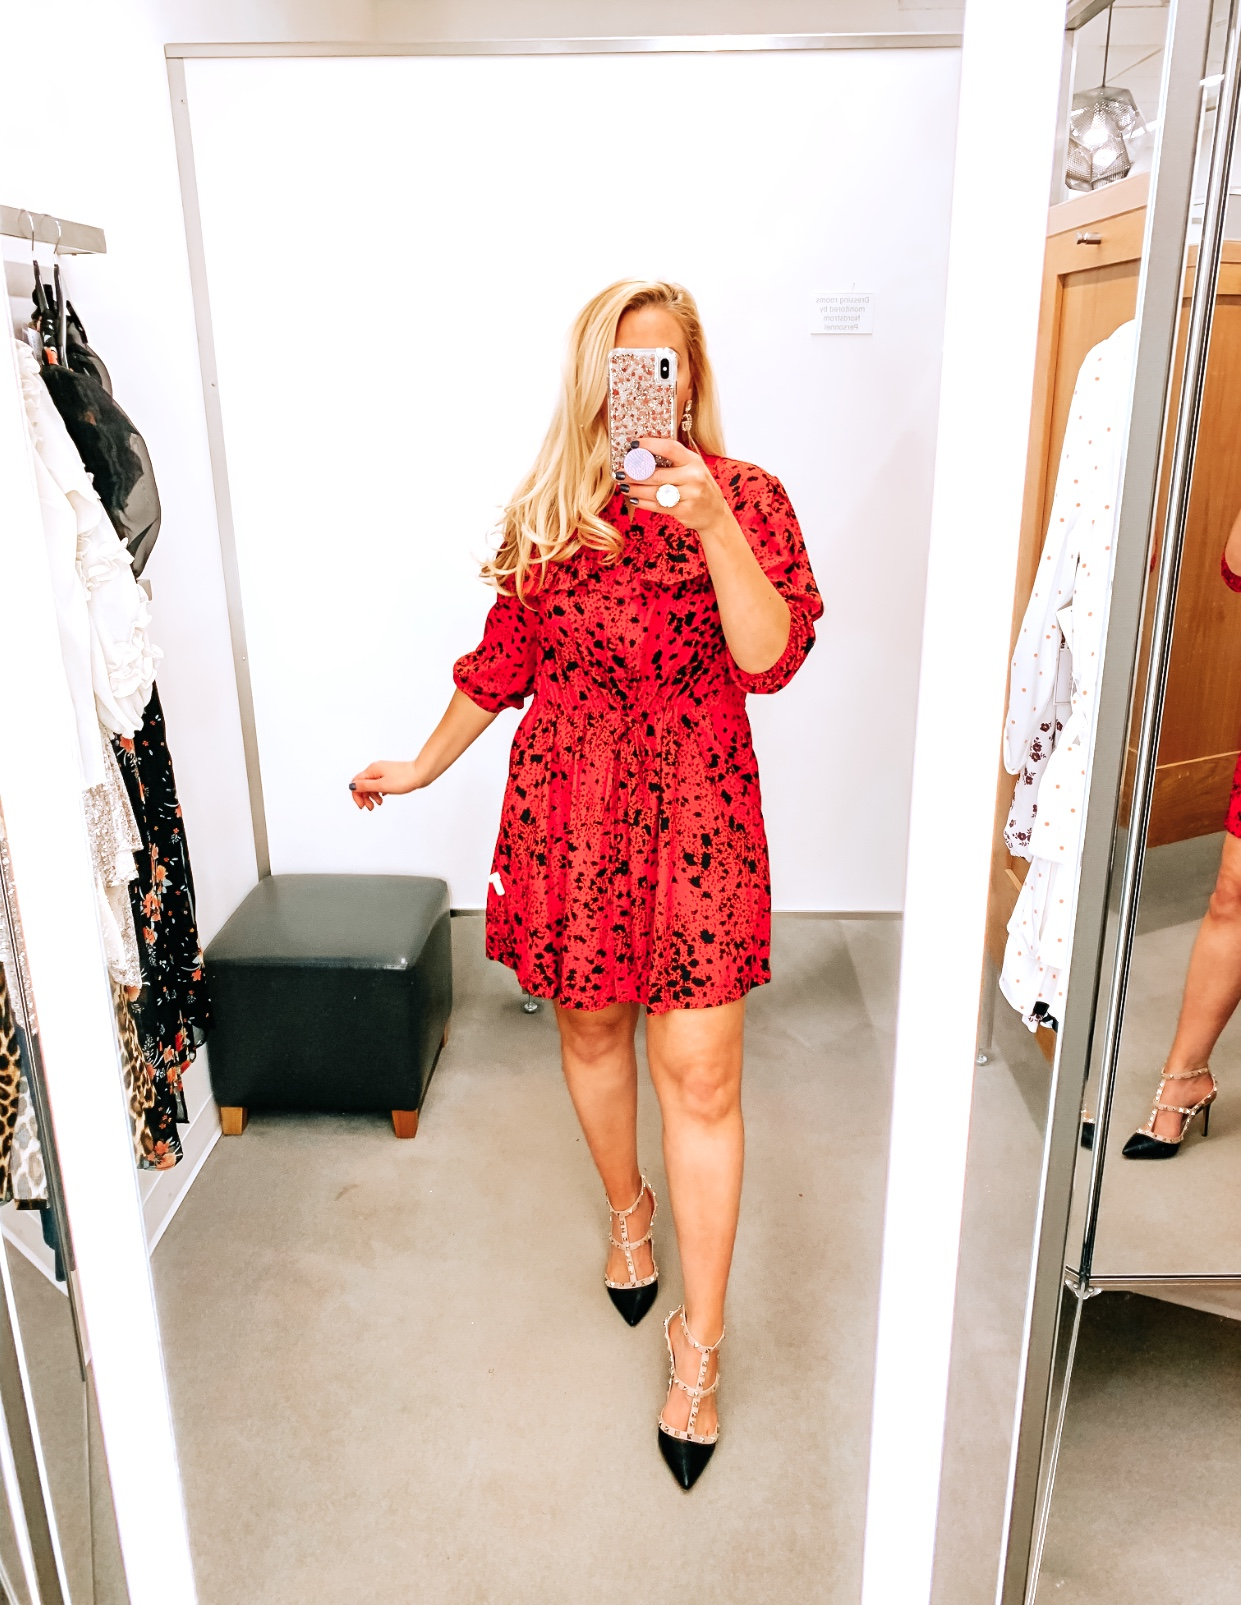 Tampa Blogger Jenn Truman providing a mirror selfie inside Nordstrom at Tampa International Plaza. She is wearing a TOPSHOP Animal Print Tie Waist Mini Shirtdress from Nordstrom and Valentino dupe black studded heels from Amazon. She is holding her phone for a mirror selfie.